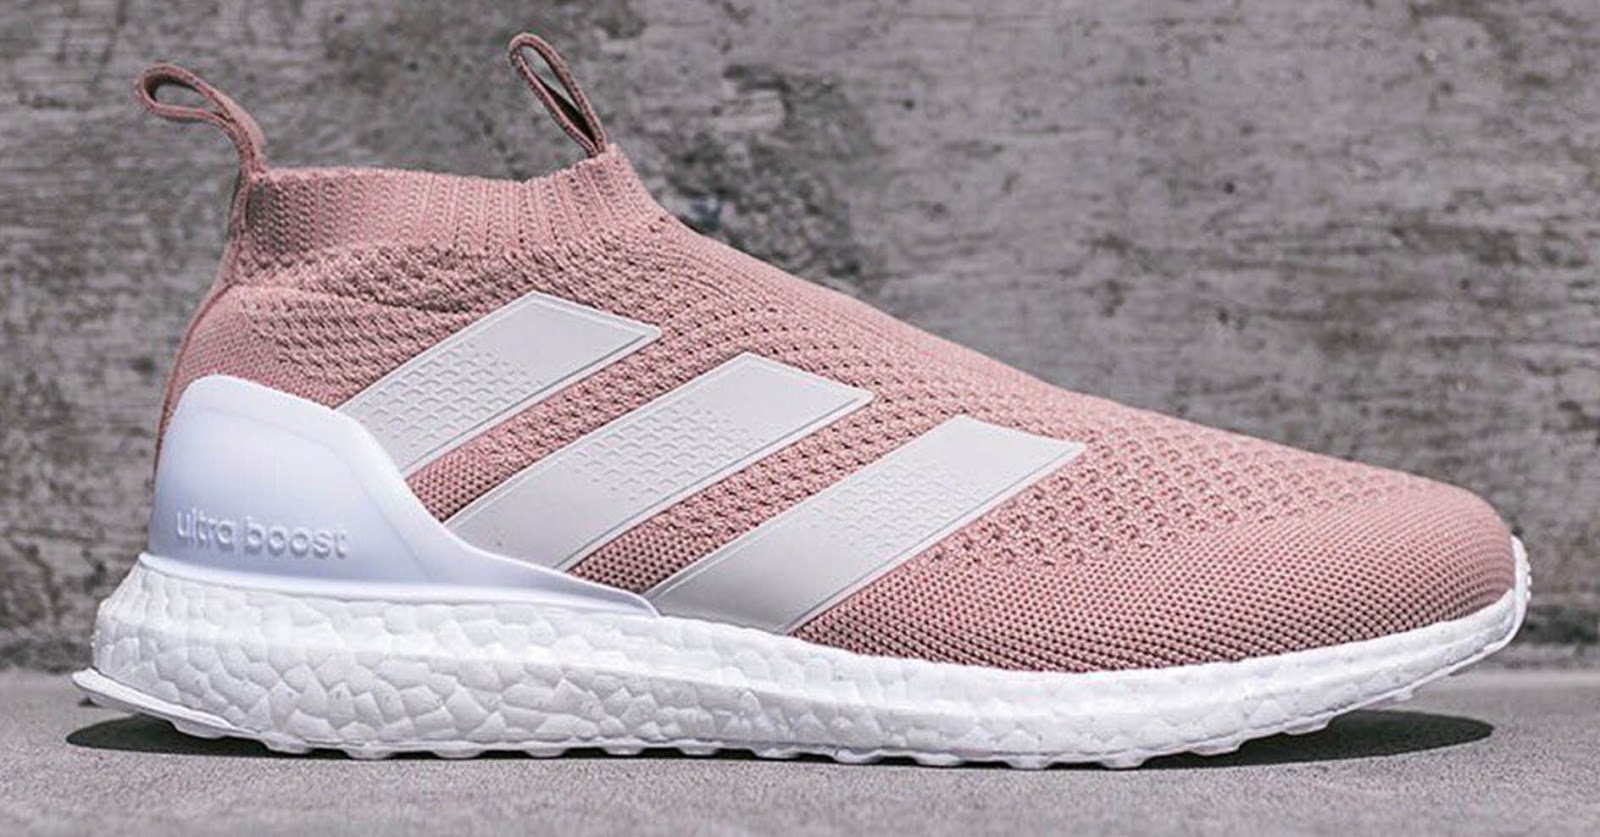 6dbcbbb037fc2 2017 - Adidas Ace 16+ PureControl Ultra Boost Sneakers Based on Ace 17+  Colorways